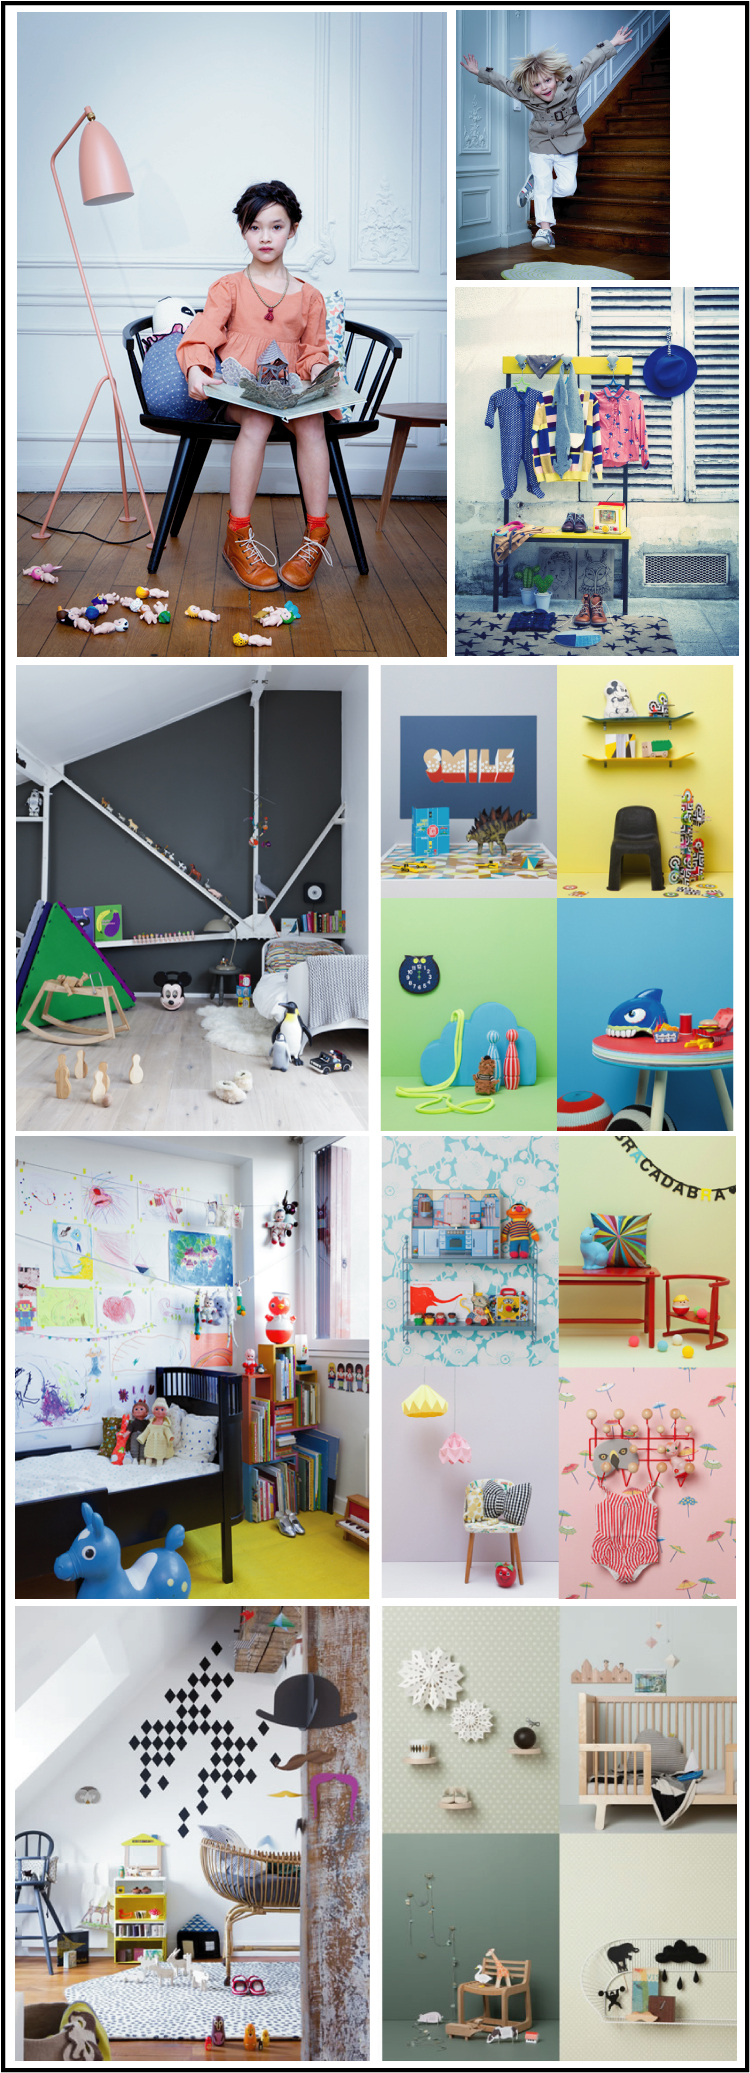 julie-ansieu-photographies-chambres enfants et portraits enfants parues dans milk, papier mach, 